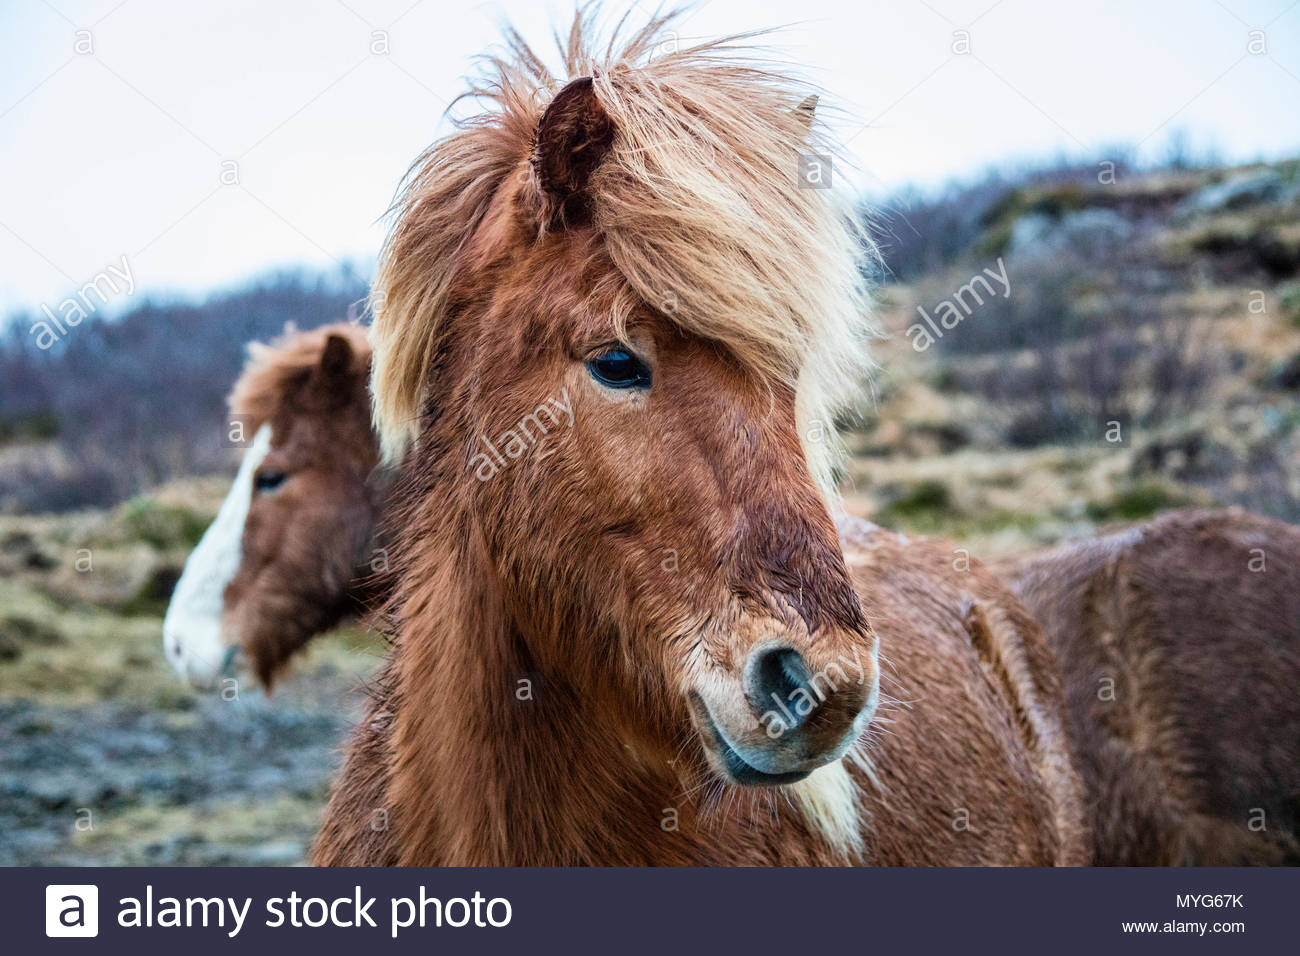 Portrait of an Icelandic pony, Equus caballus. - Stock Image